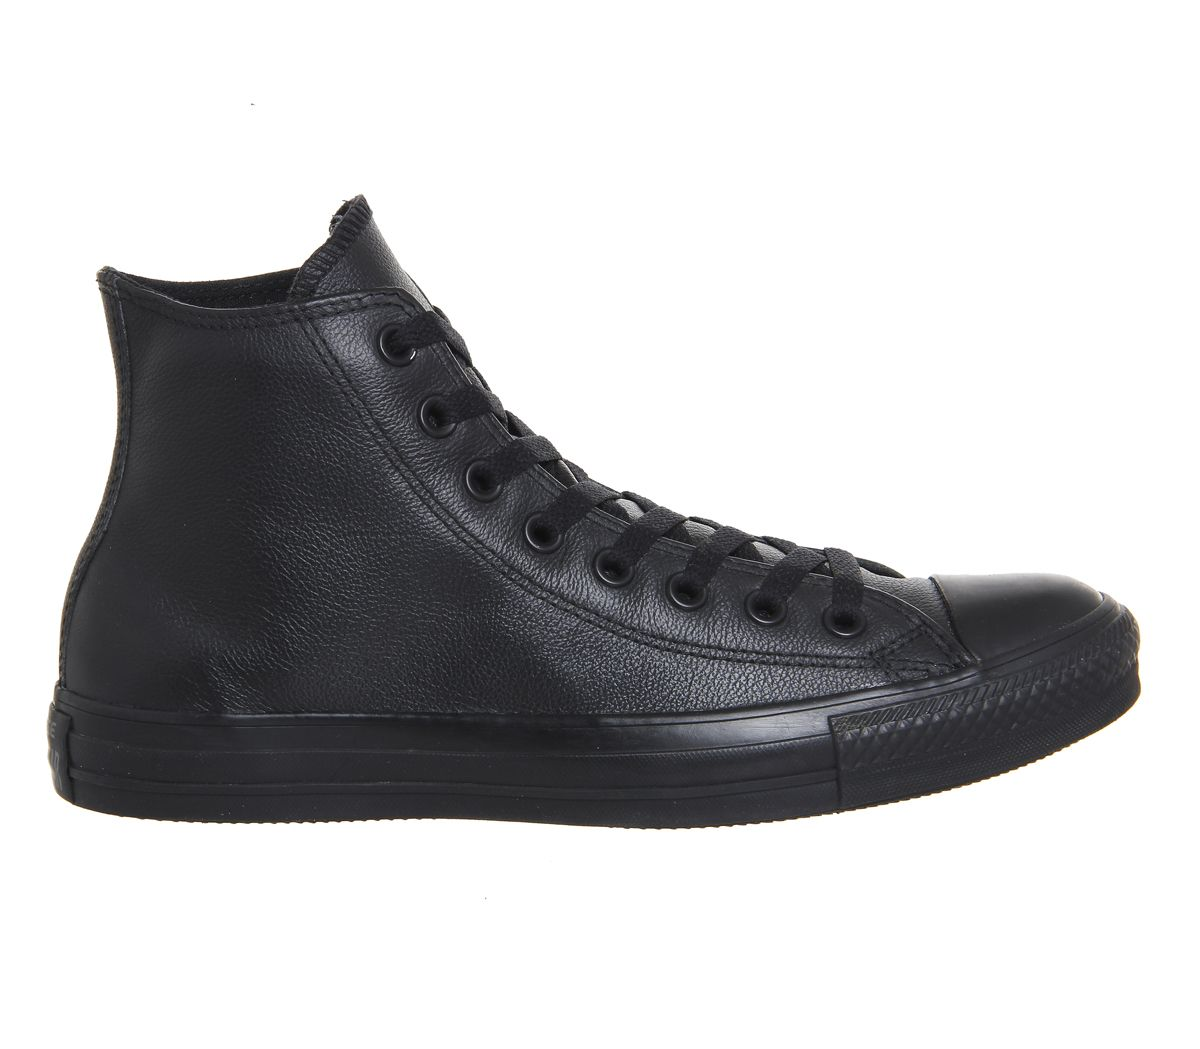 222c48c8a1 Sentinel Mens Converse All Star Hi Leather Black Mono Trainers Shoes